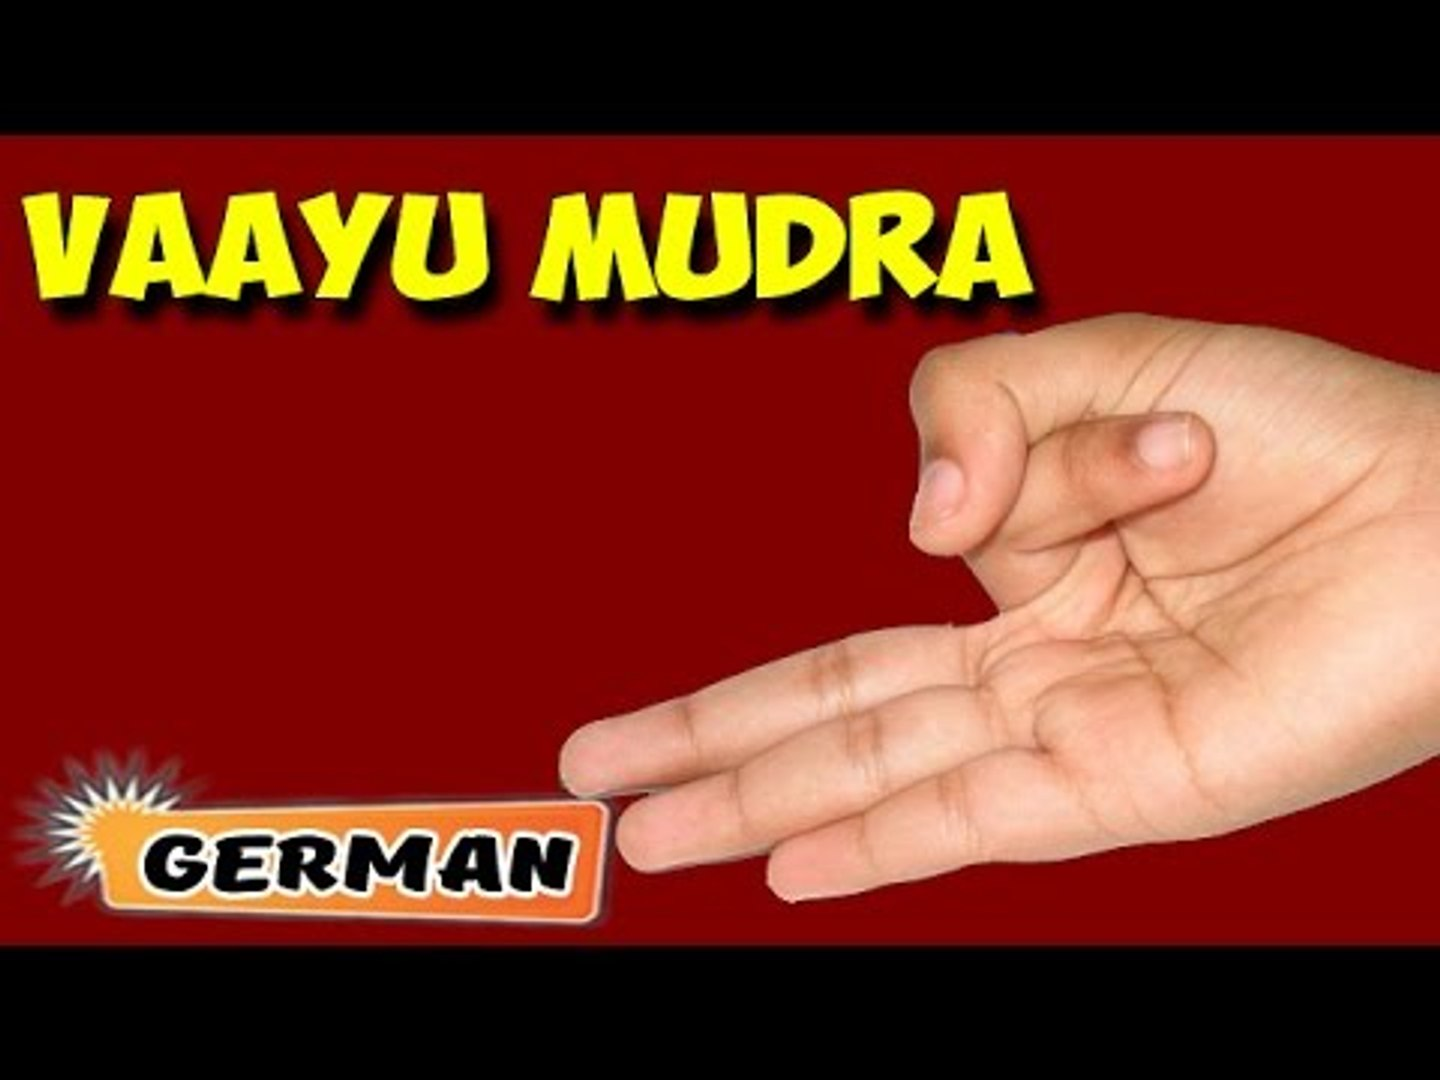 Vayu Mudra Yoga Fur Anfanger Yoga Pose For Joint Pain Arthritis About Yoga In German Video Dailymotion